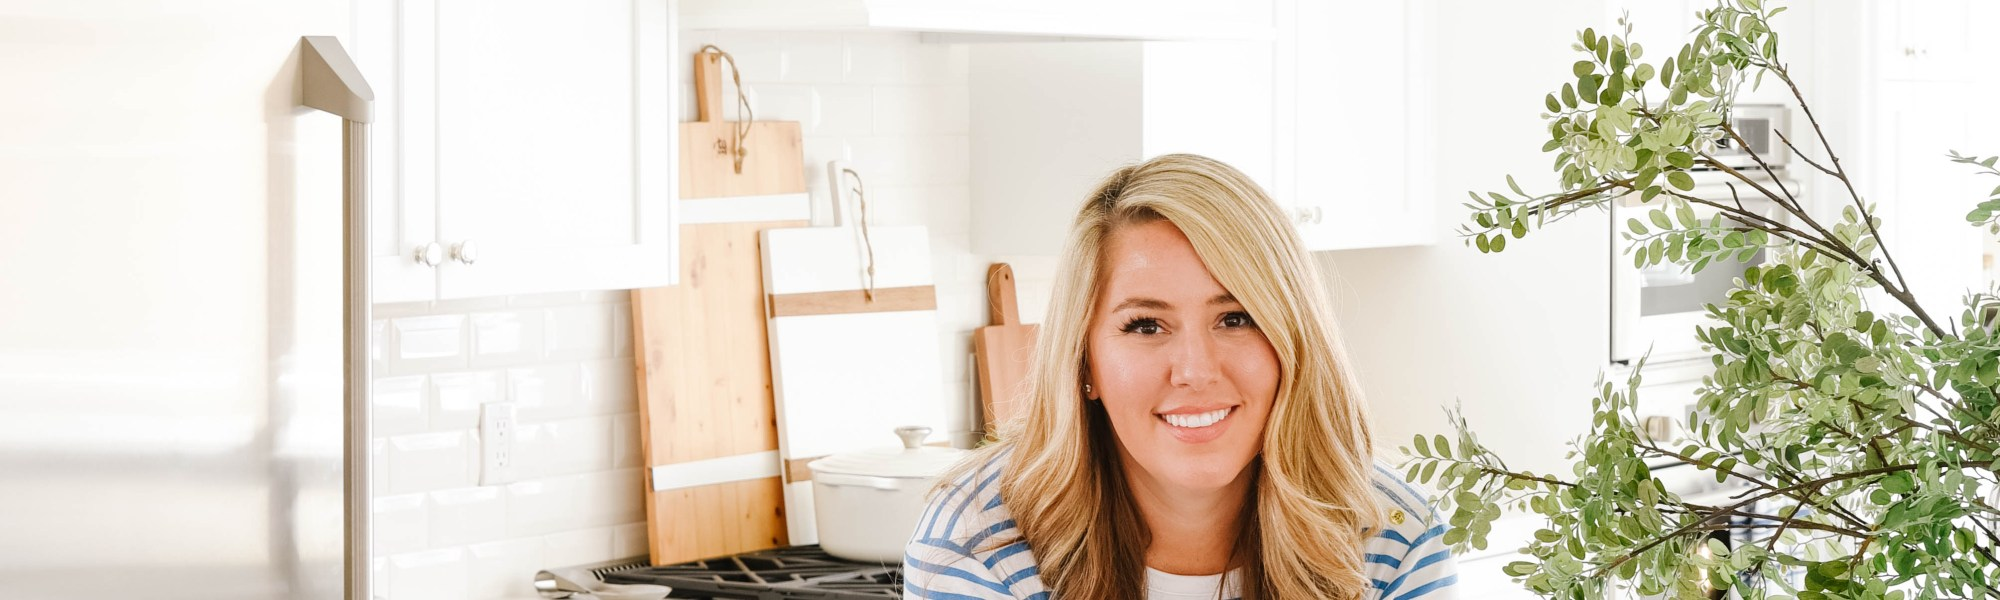 Q&A with Sarah Stewart of Life on Virginia Street